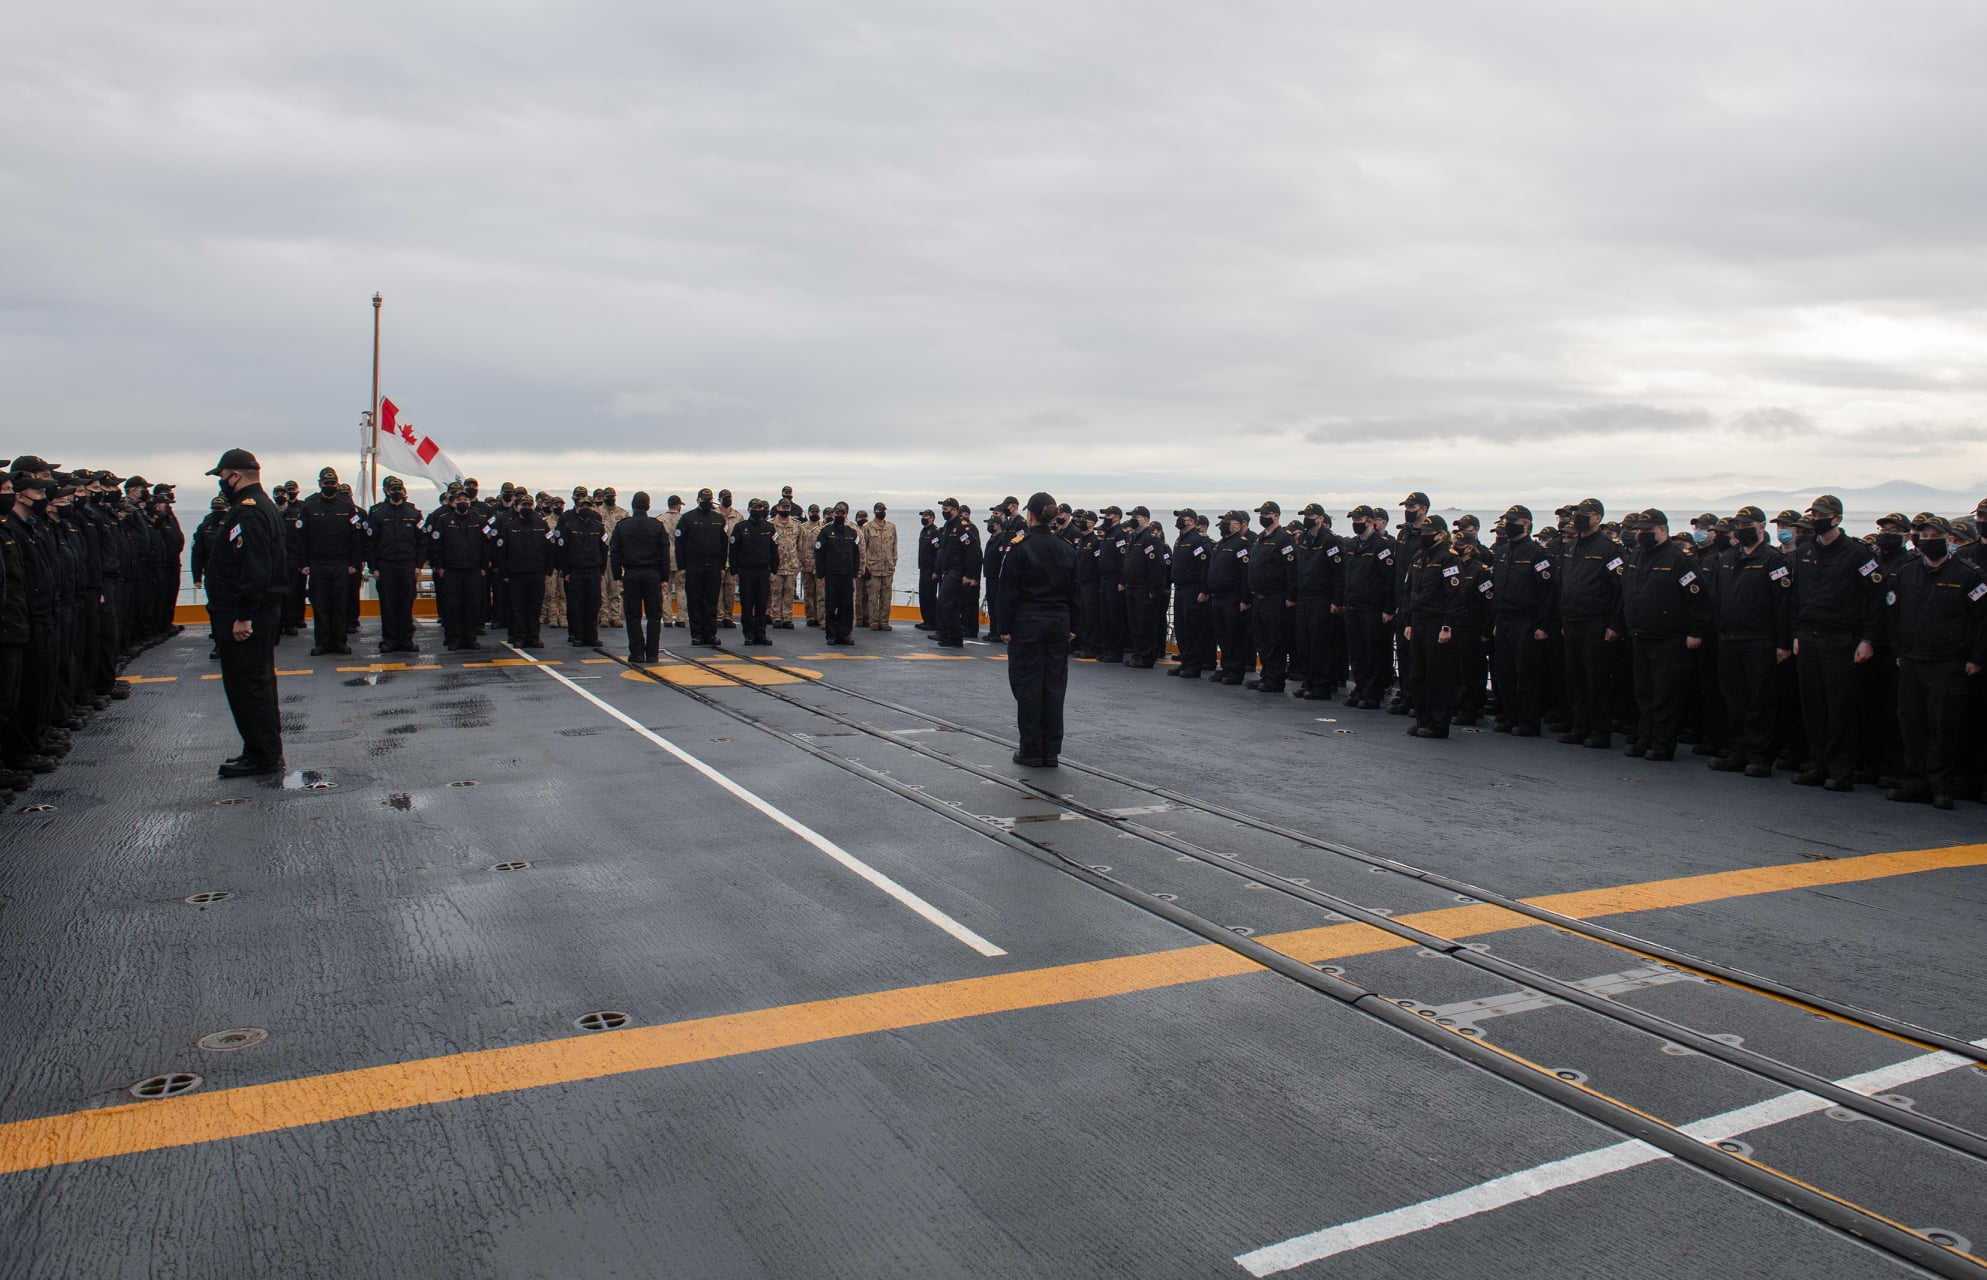 HMCS Winnipeg's ship's company